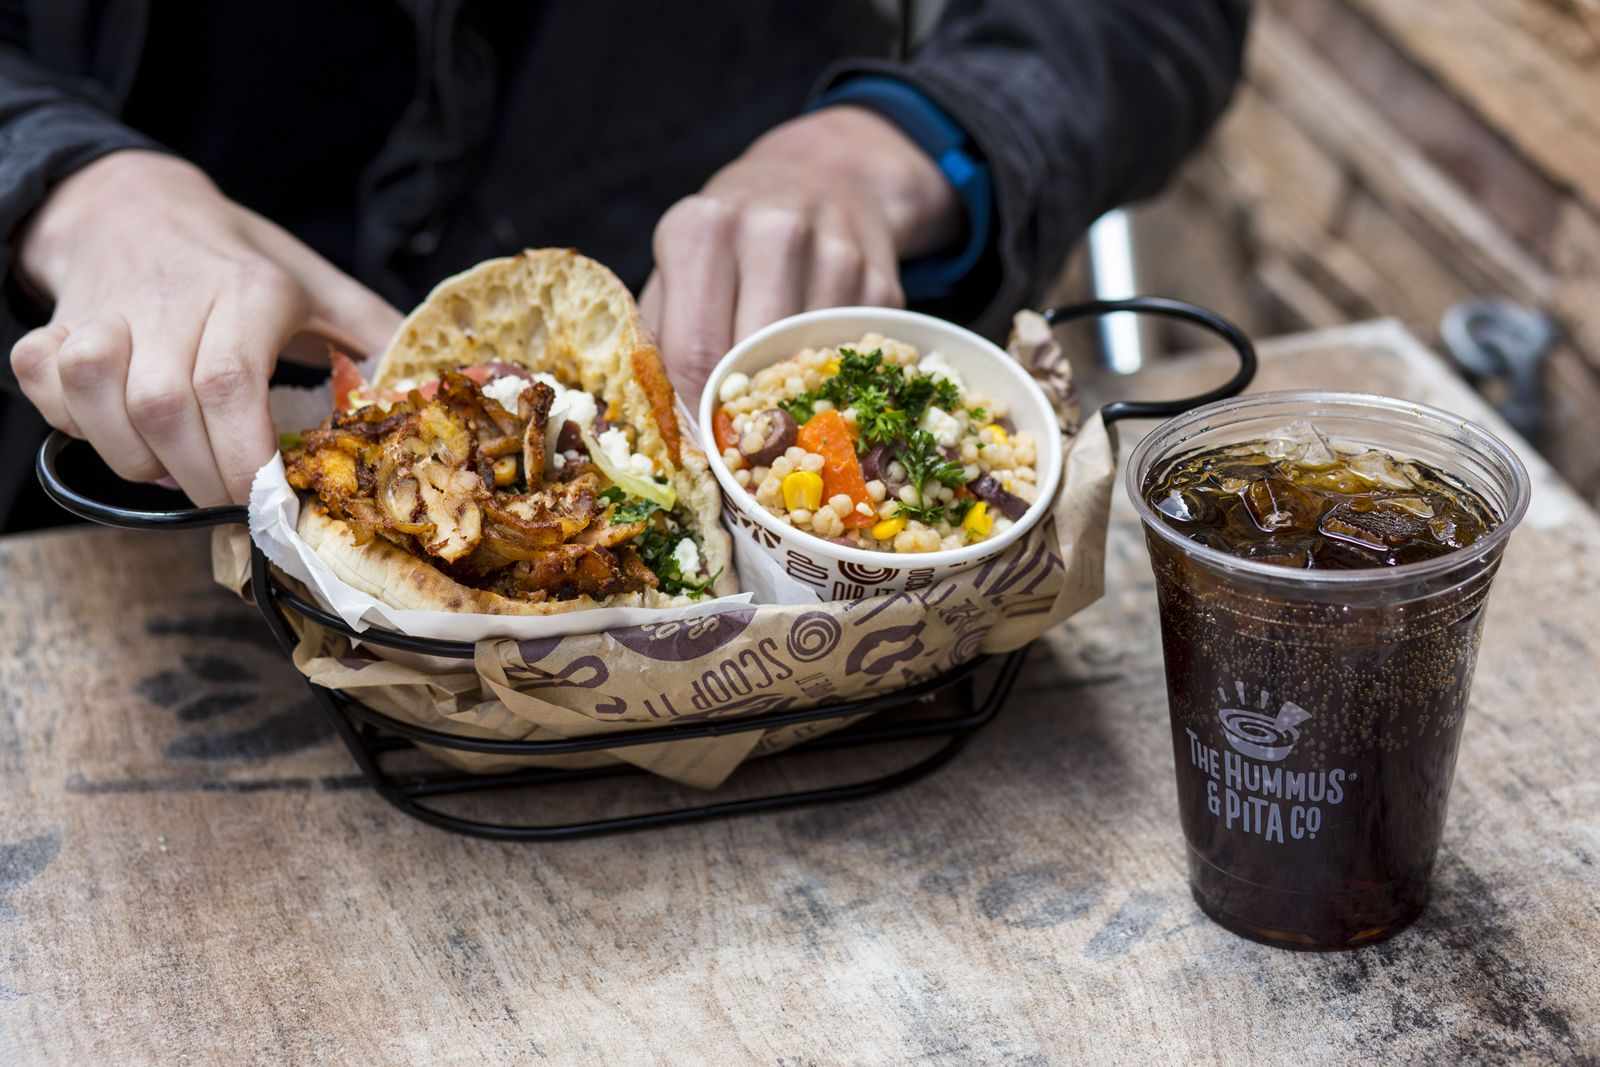 The Hummus & Pita Co. will officially begin its nationwide expansion with the opening of its first franchised location in Brookfield, CT (15 Federal Road) on Saturday, August 11.